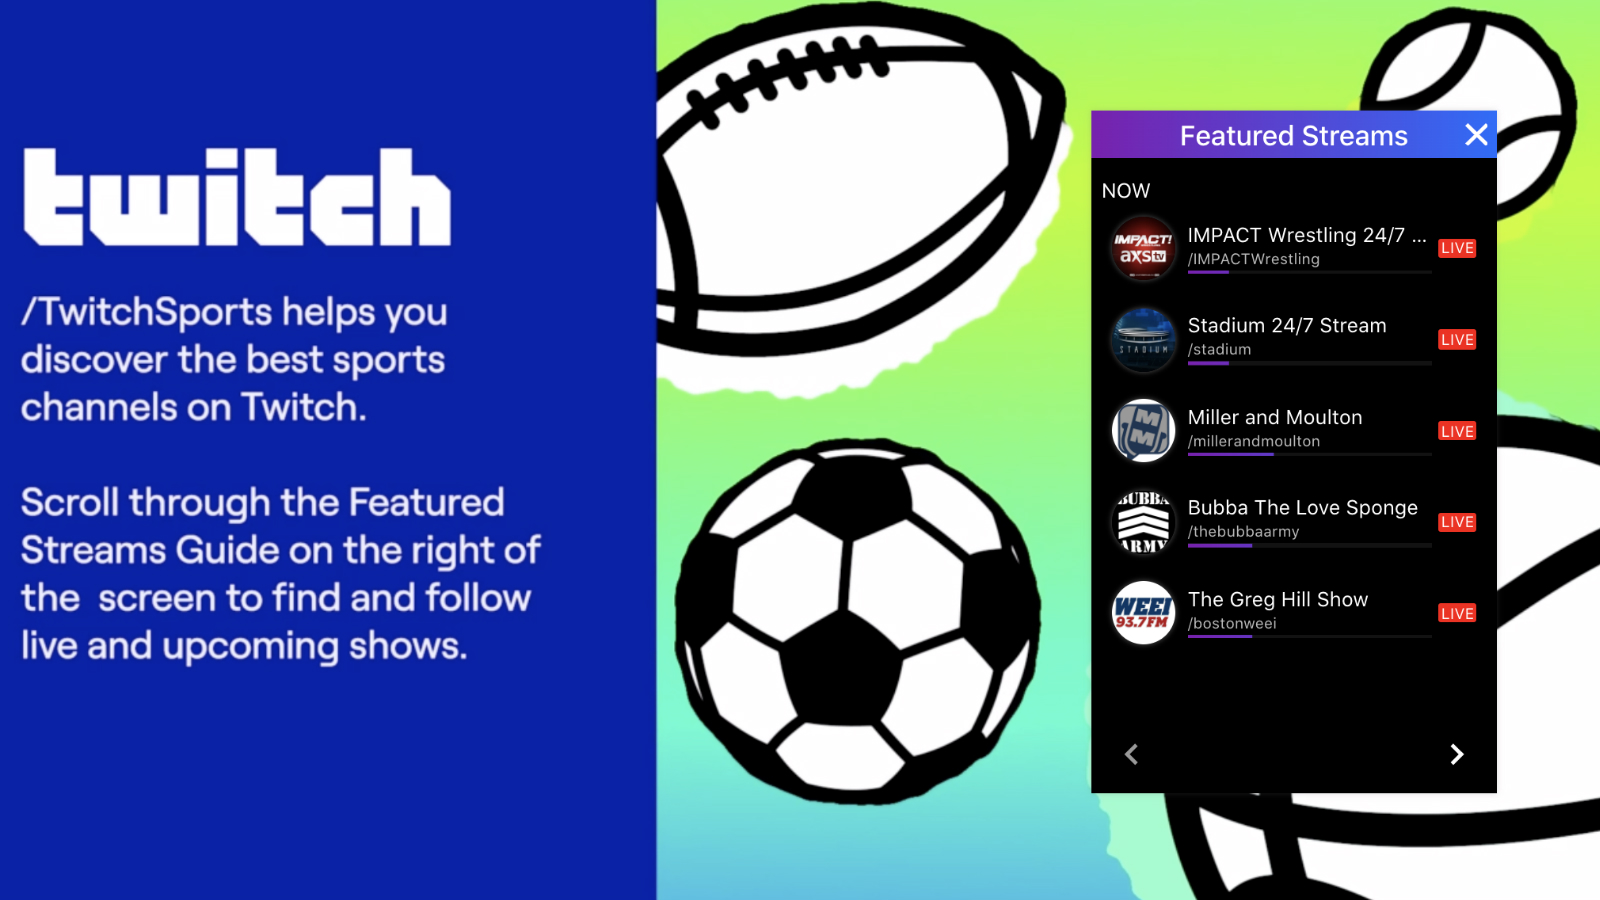 Livestream of Twitch sports channel